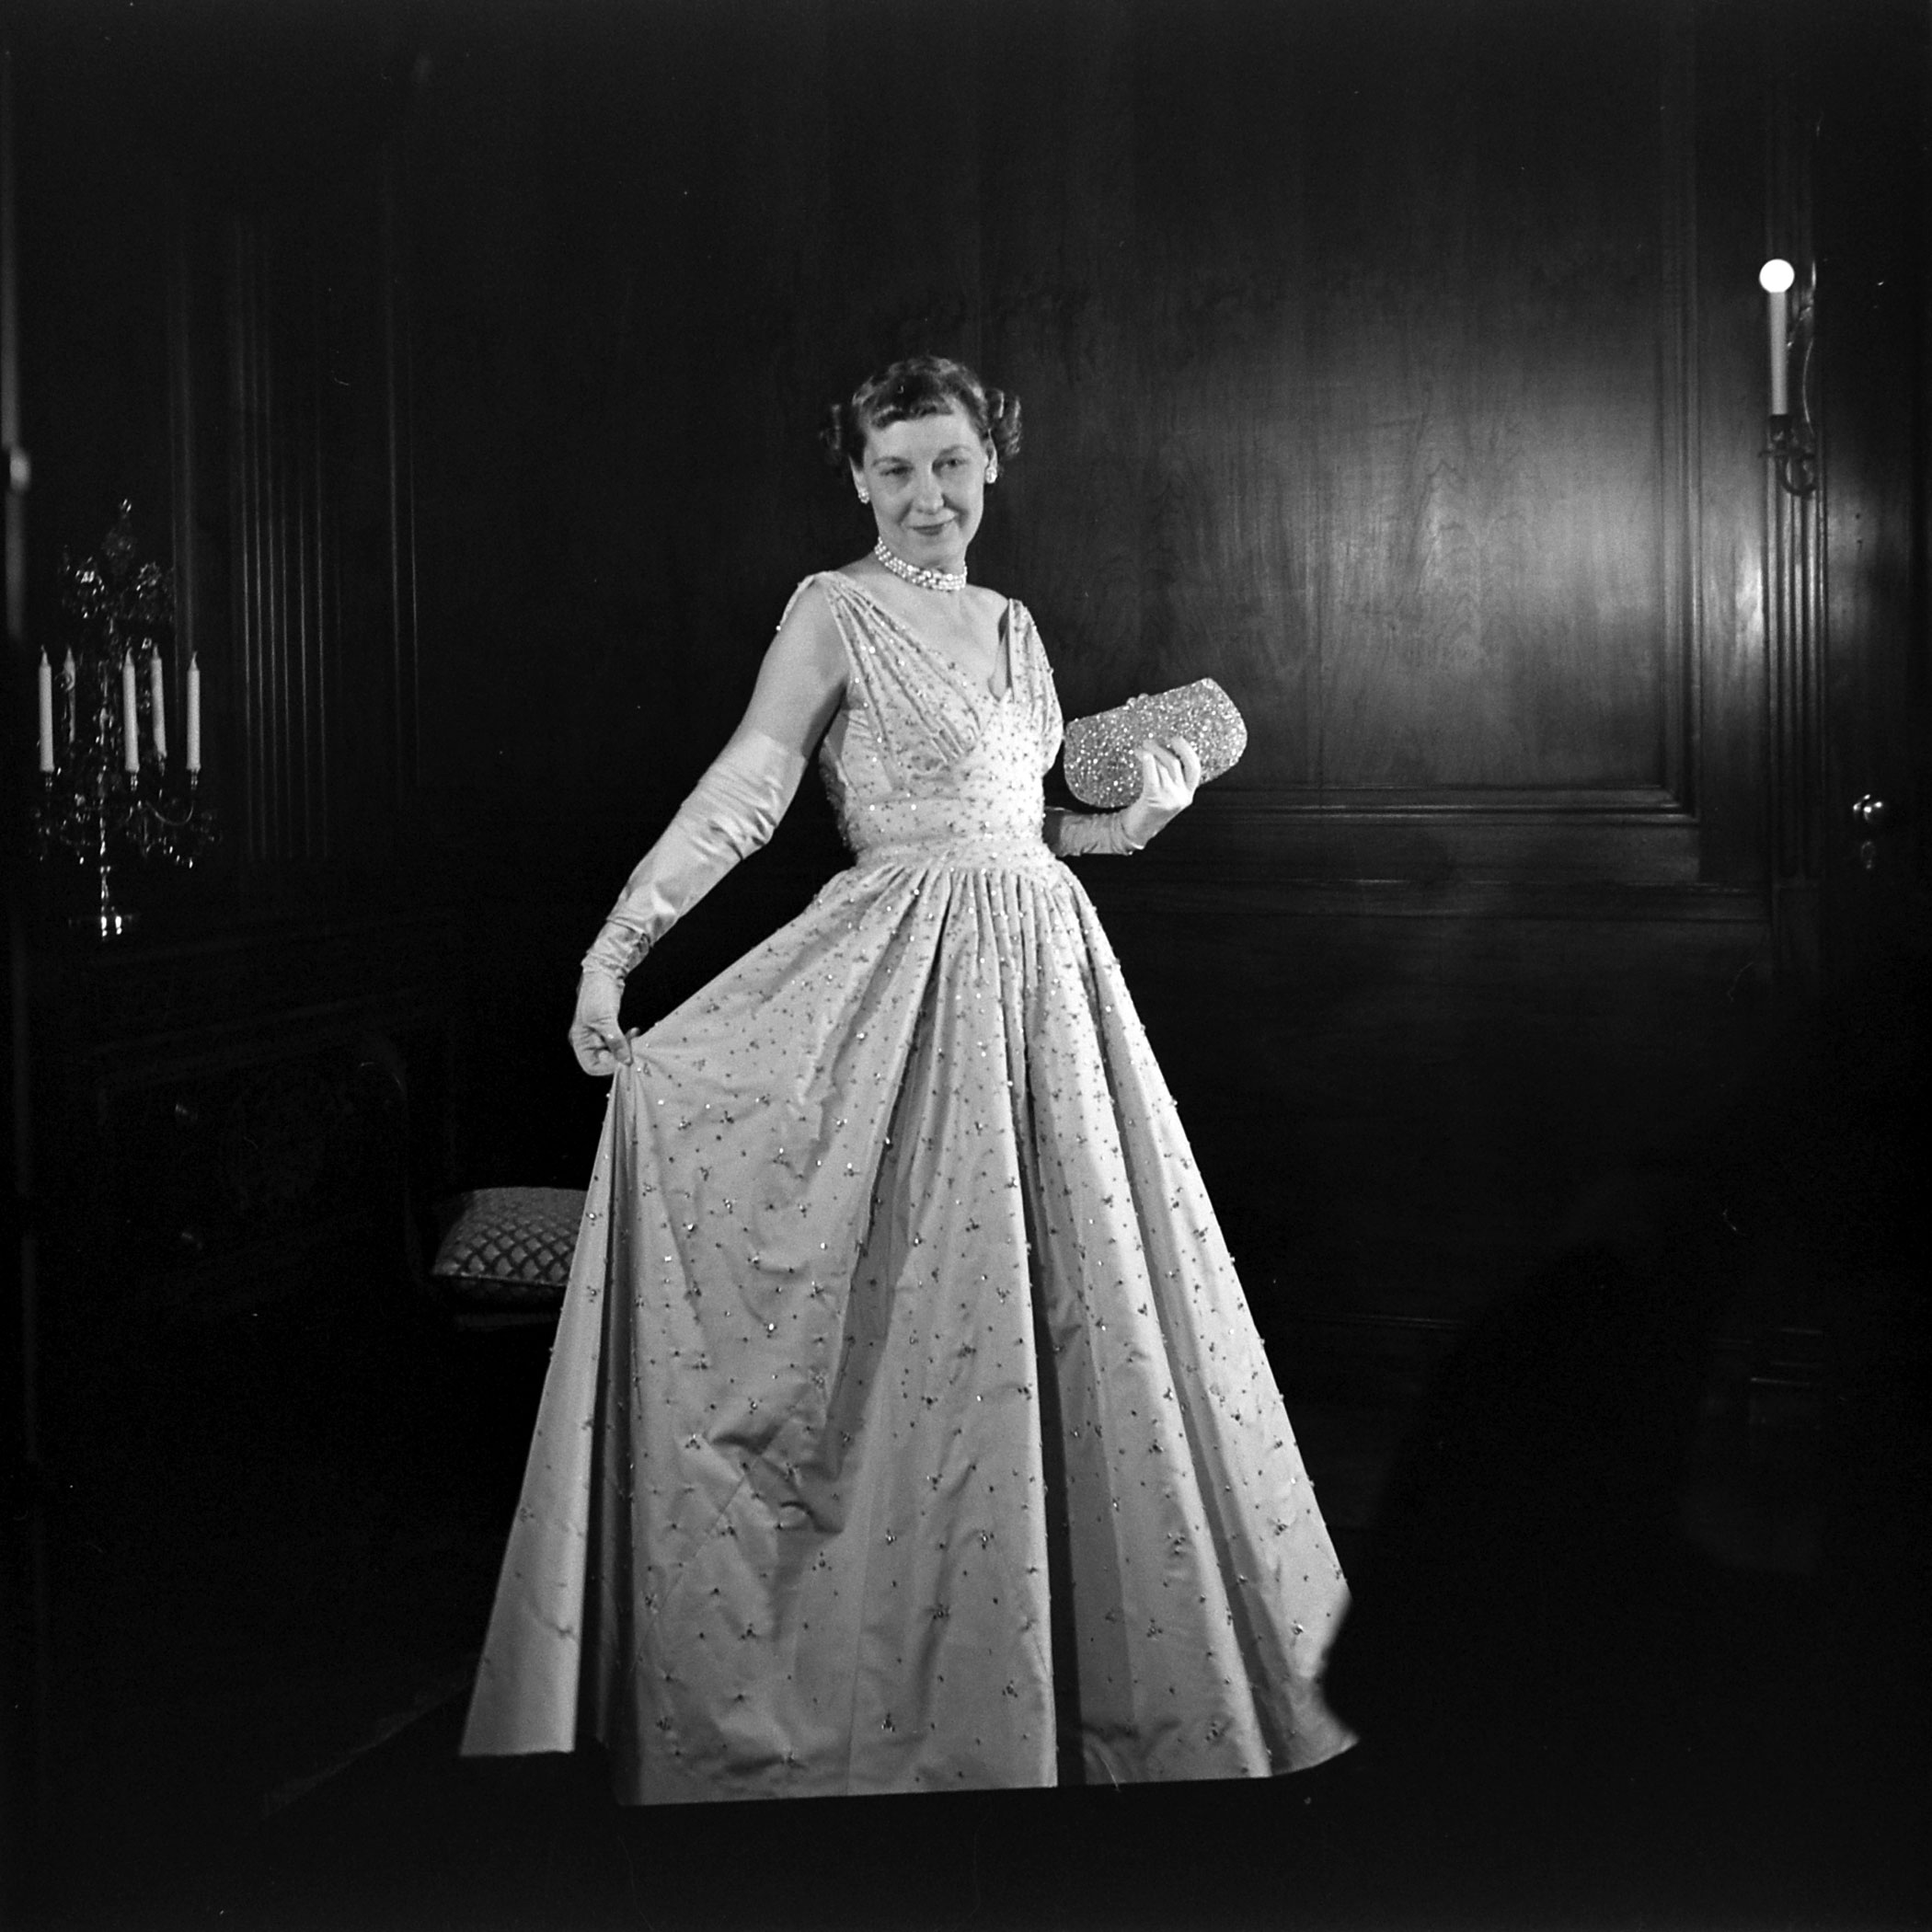 Mamie Eisenhower posing in her inaugural ball gown with a jeweled purse encrusted with 3,456 pink pearls, 1953.